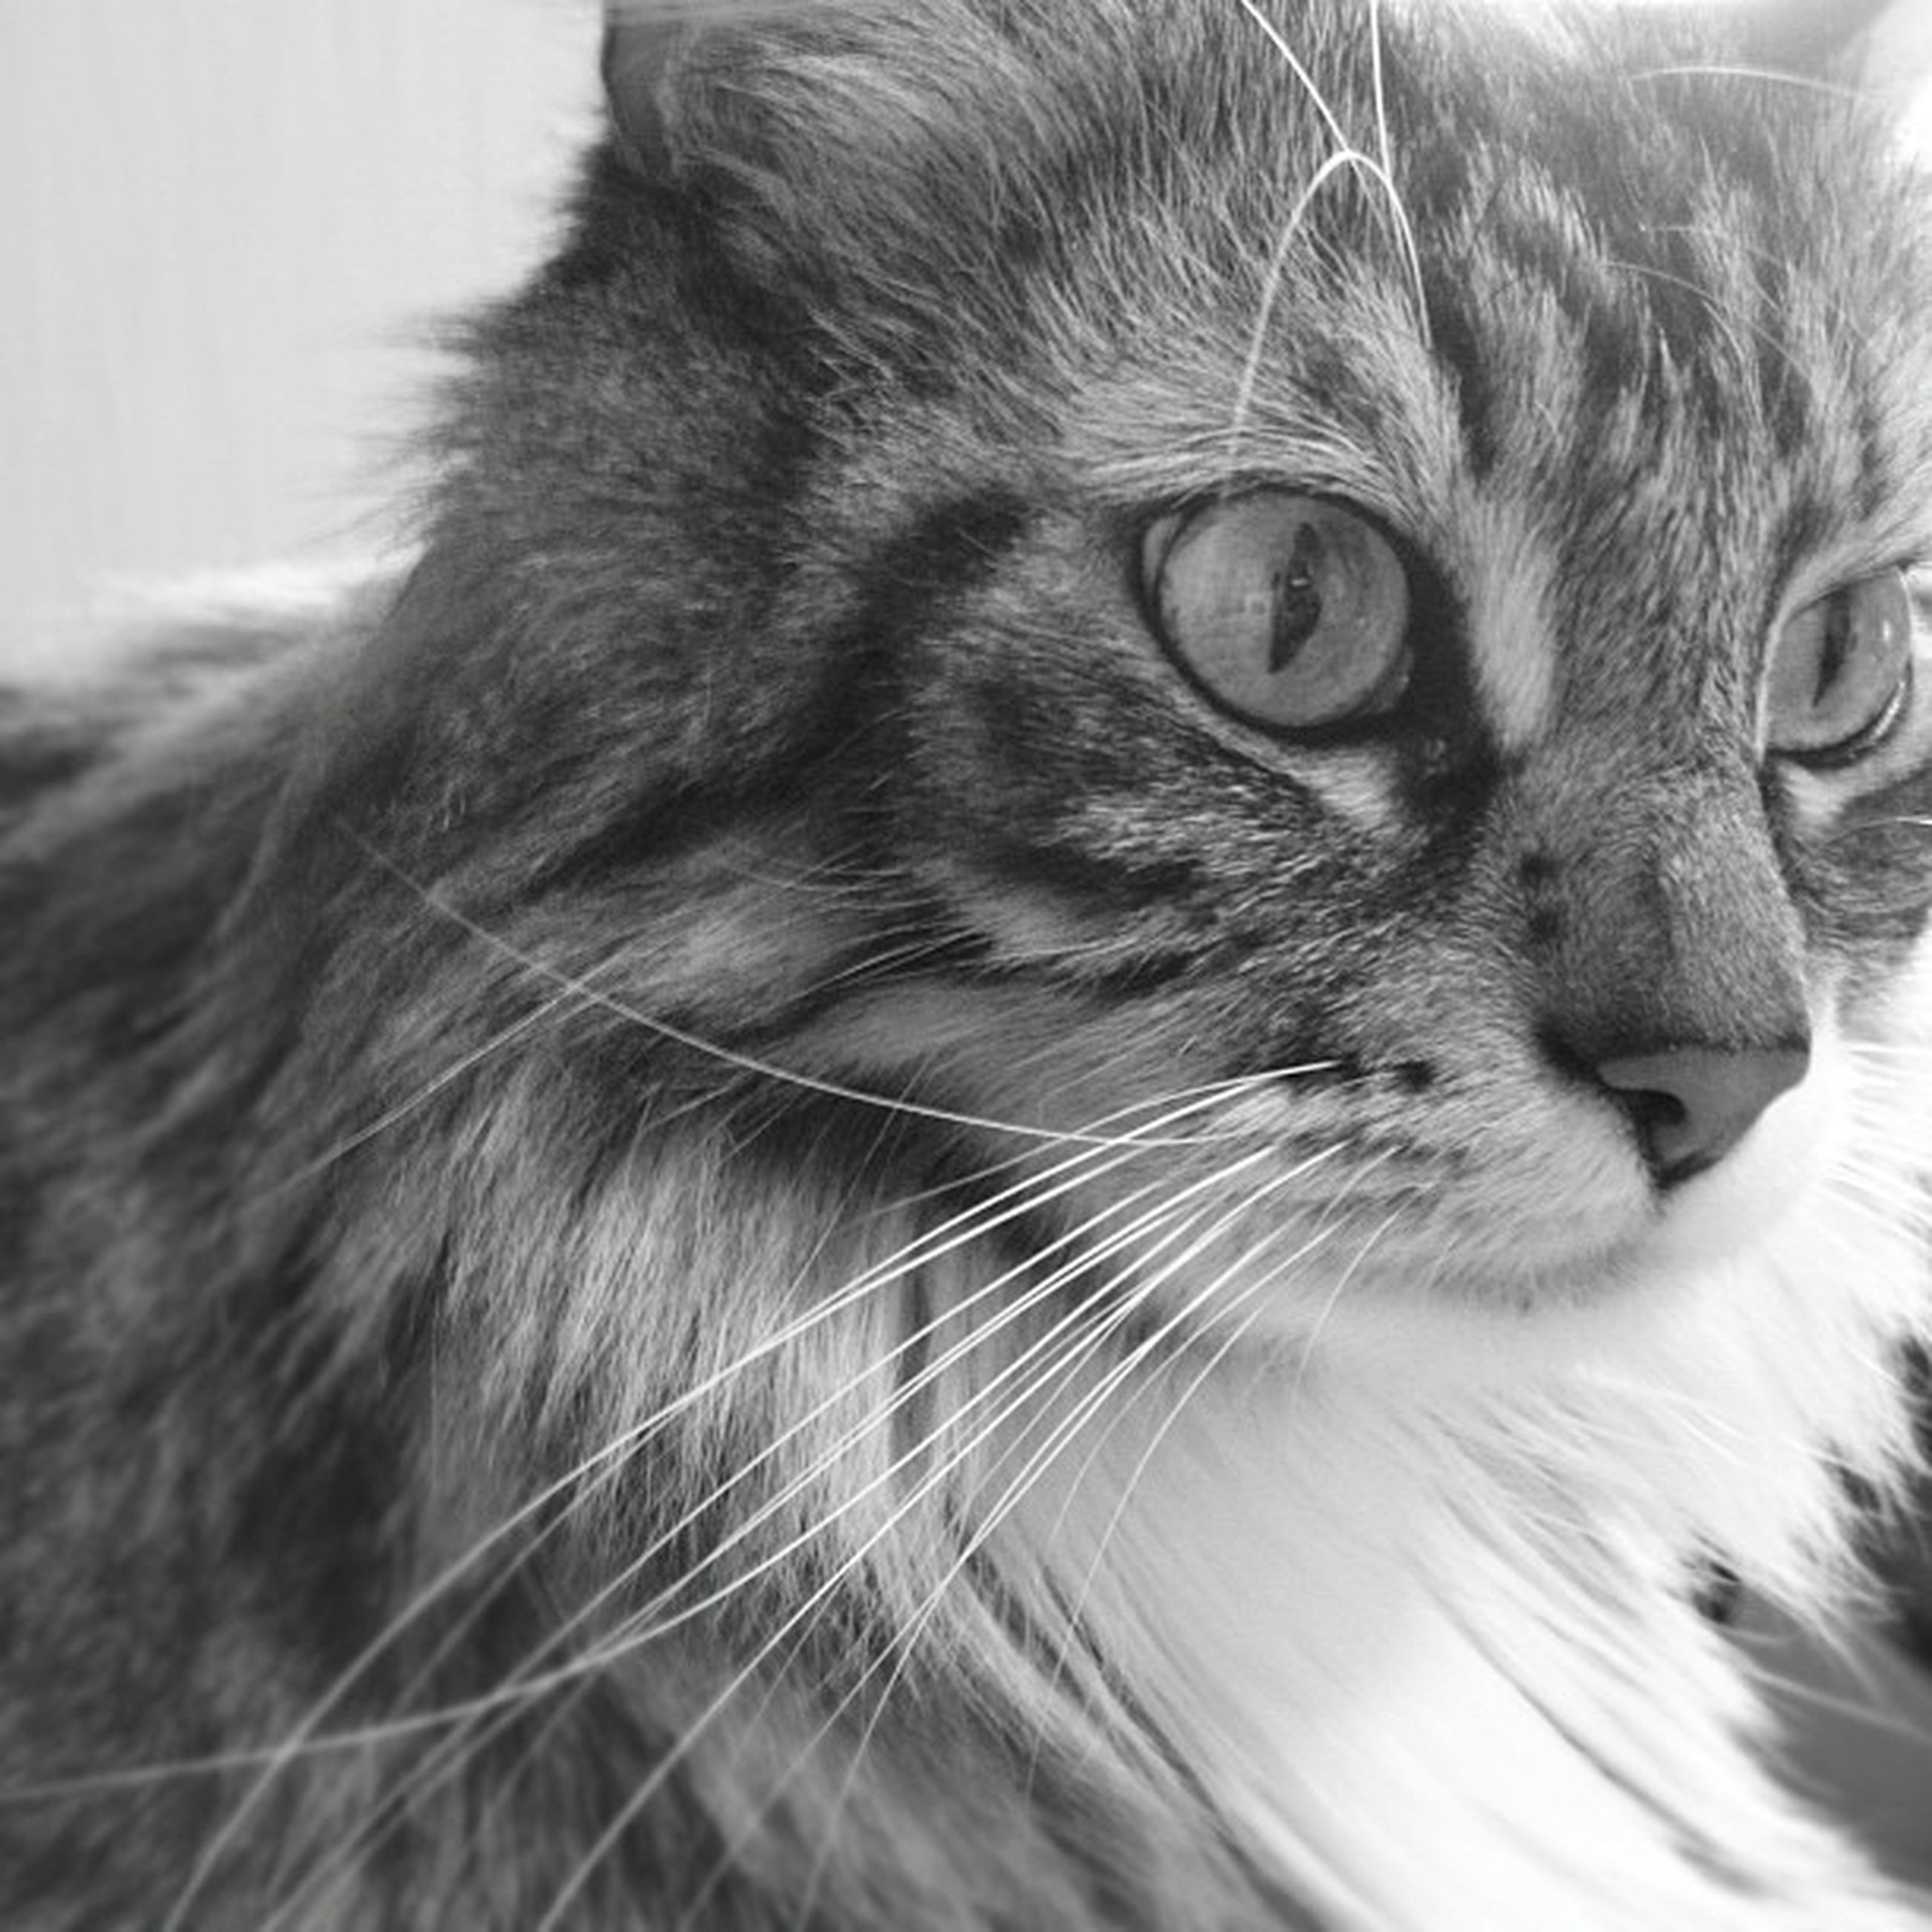 pets, one animal, domestic animals, animal themes, whisker, domestic cat, close-up, portrait, mammal, no people, looking at camera, feline, indoors, day